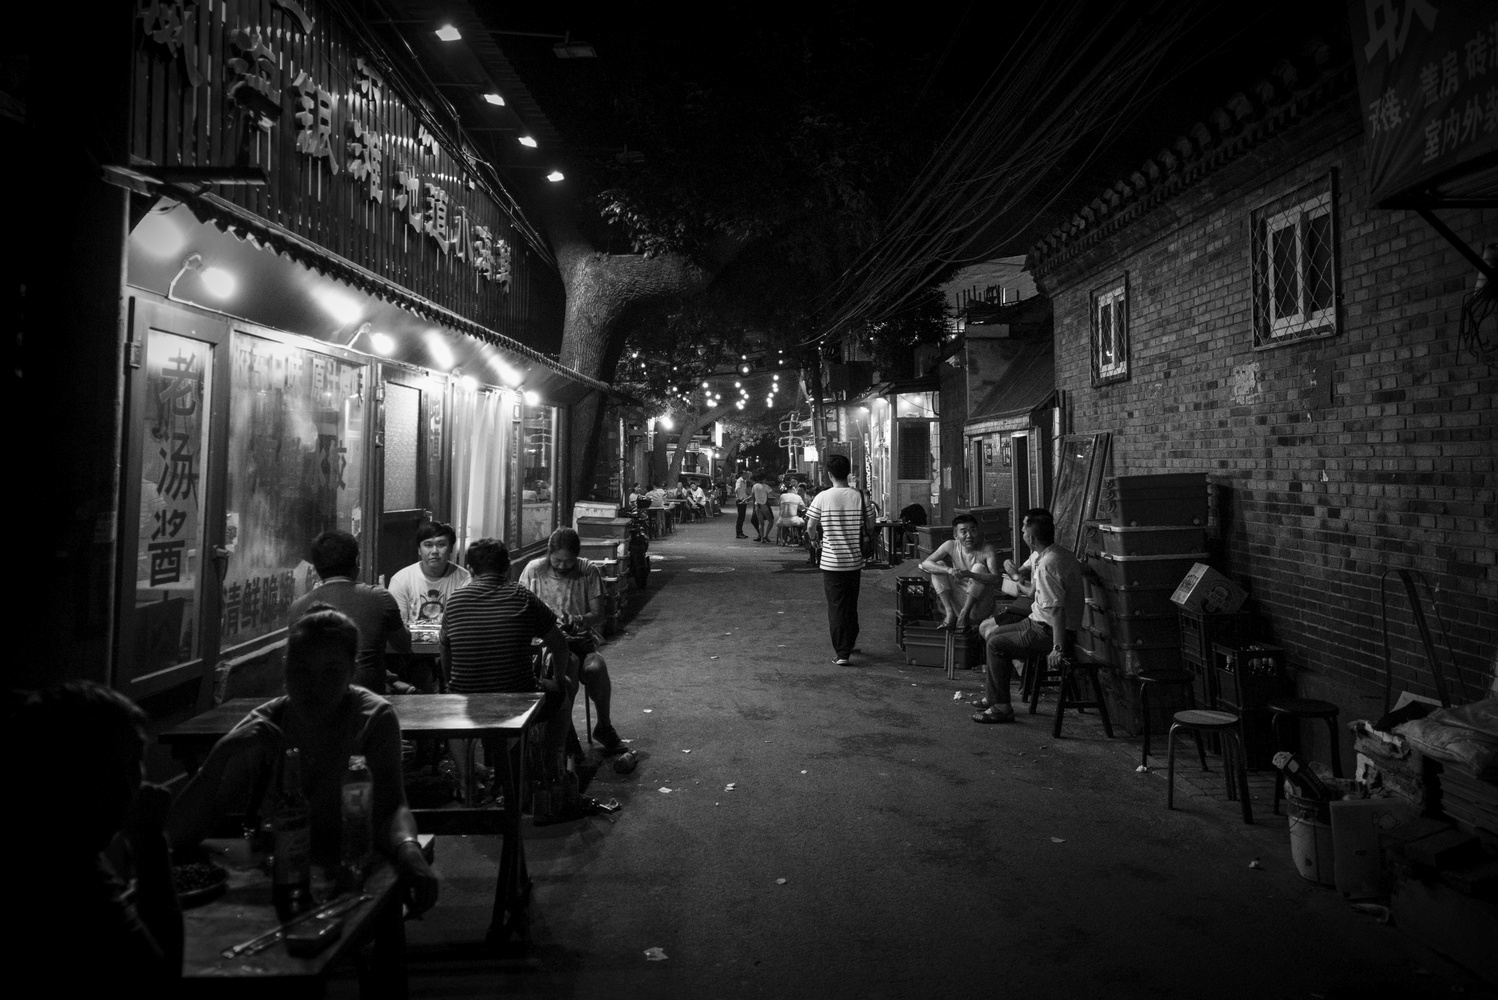 A typical Hutong in DongZhiMen, Beijing by night by Léonard Rodriguez